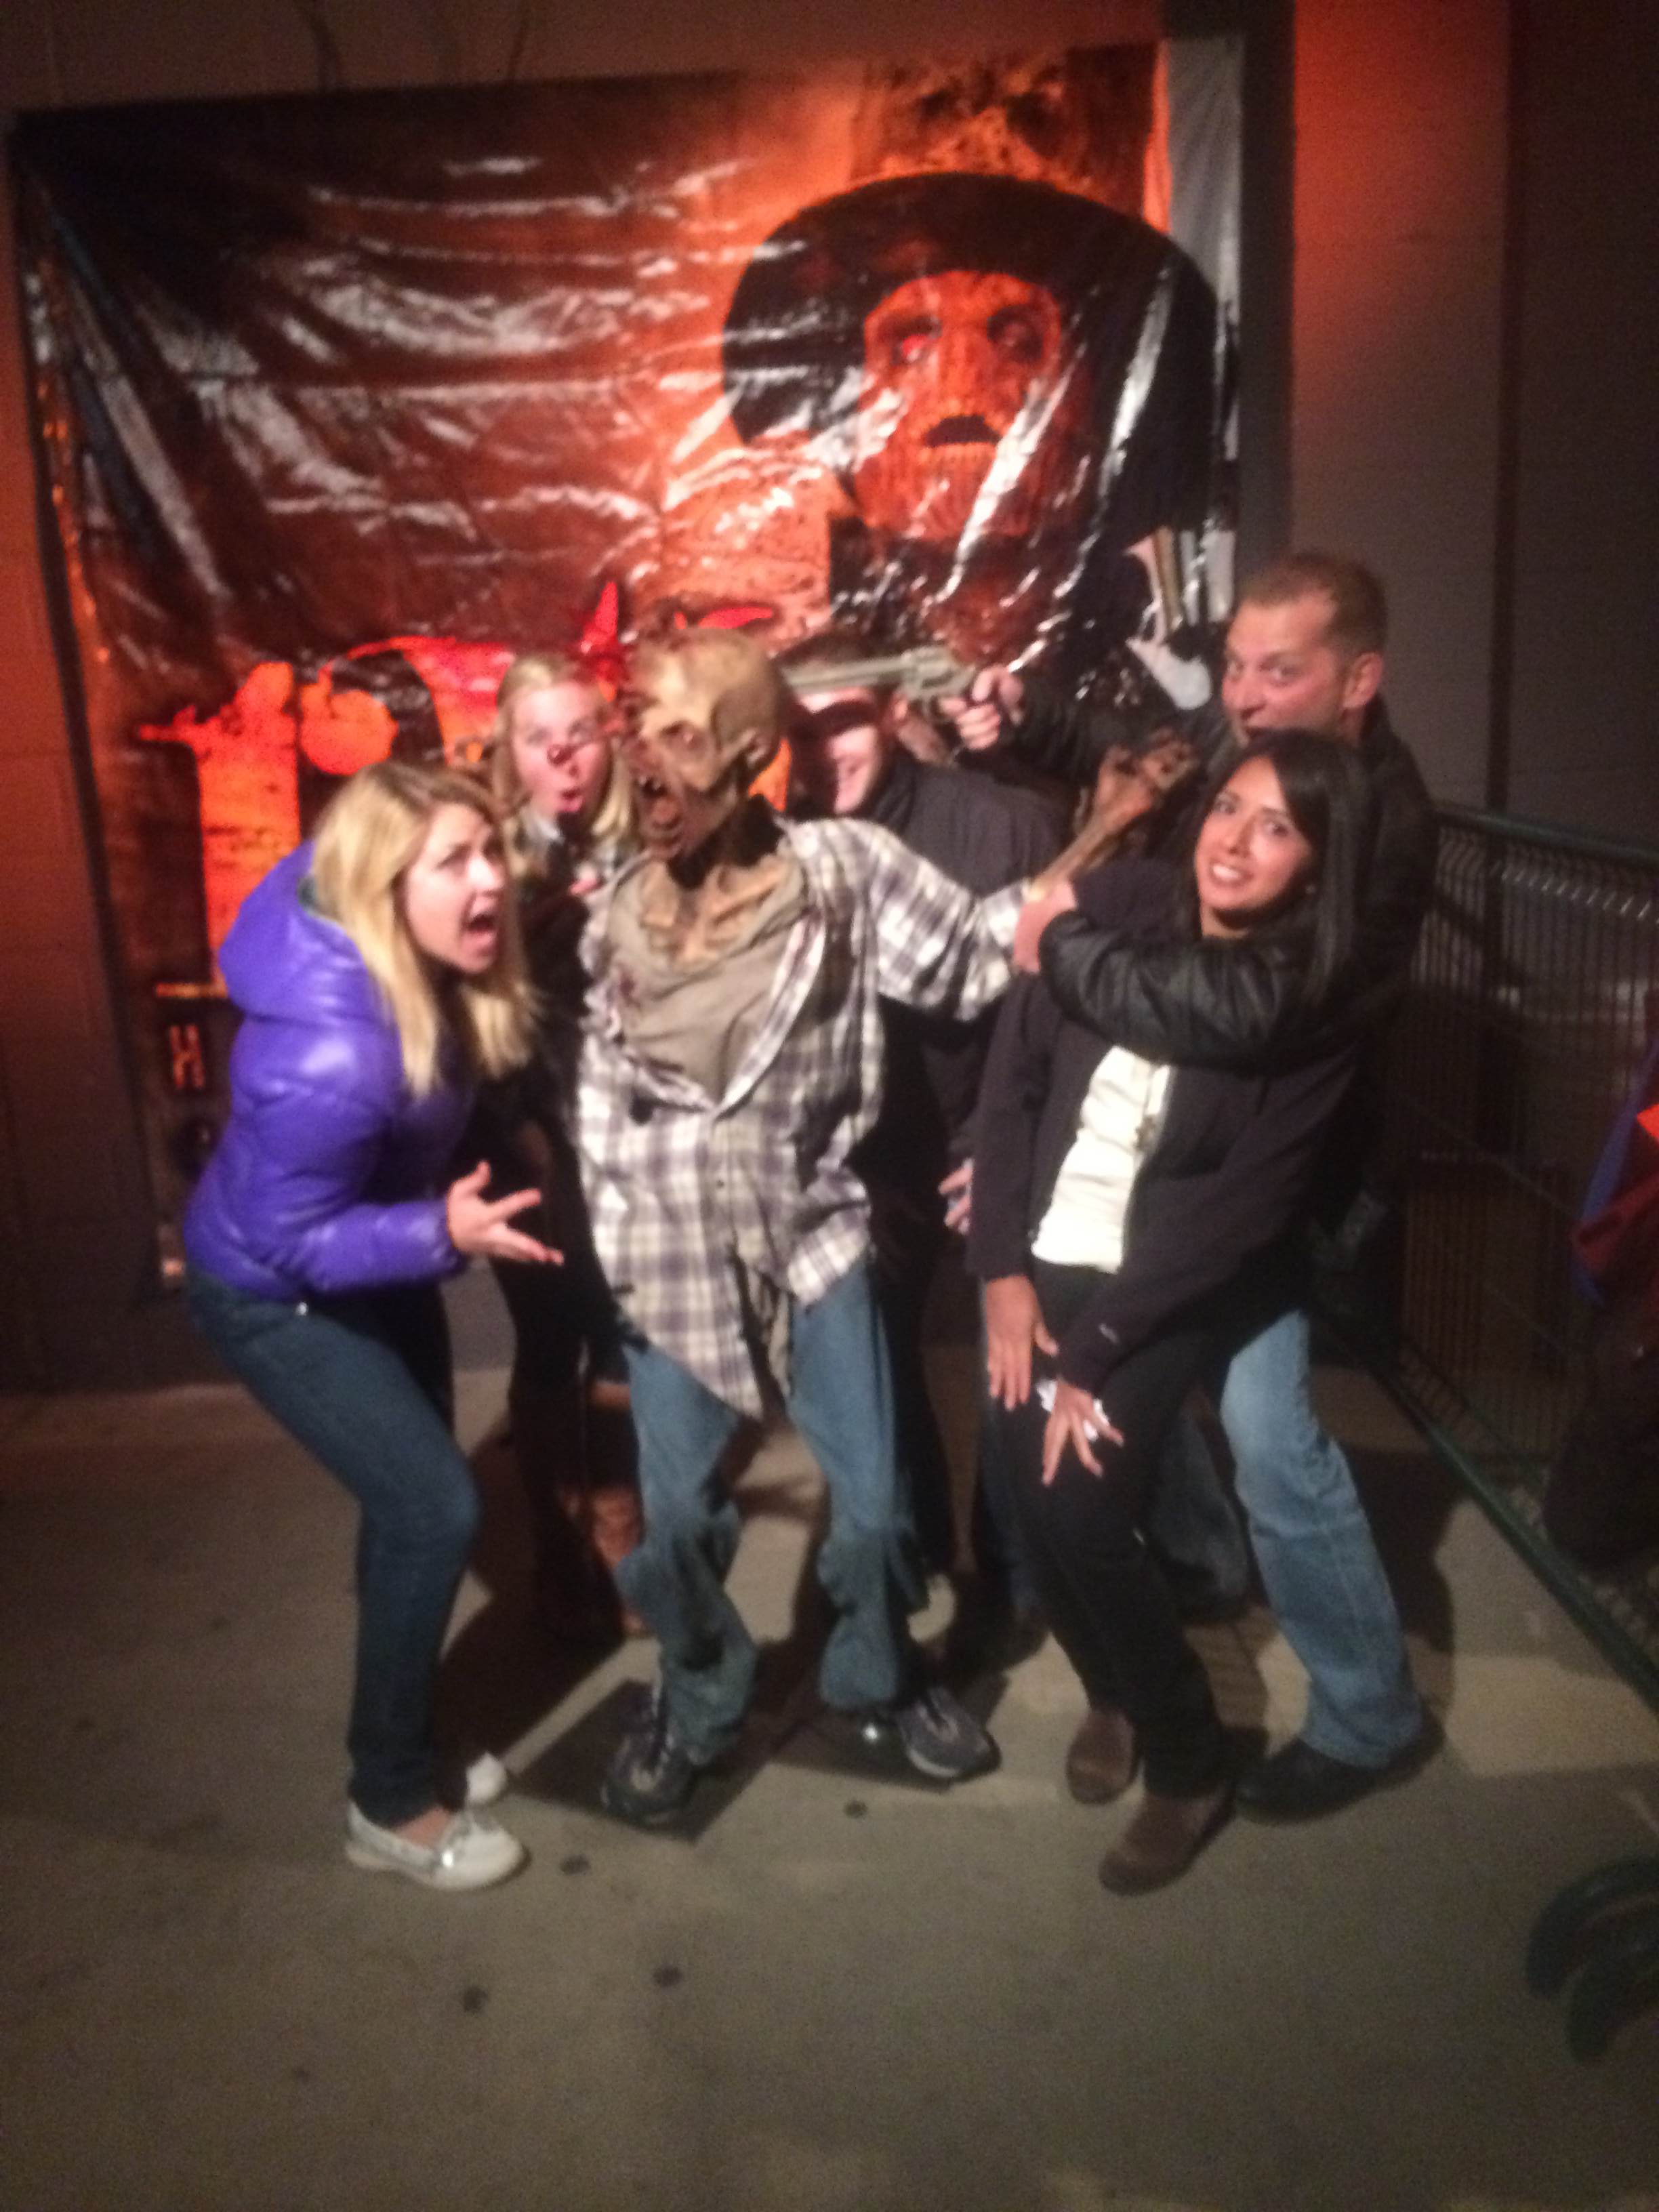 Denver 39 s 13th floor haunted house ranks number one in usa for 13th floor haunted house phoenix